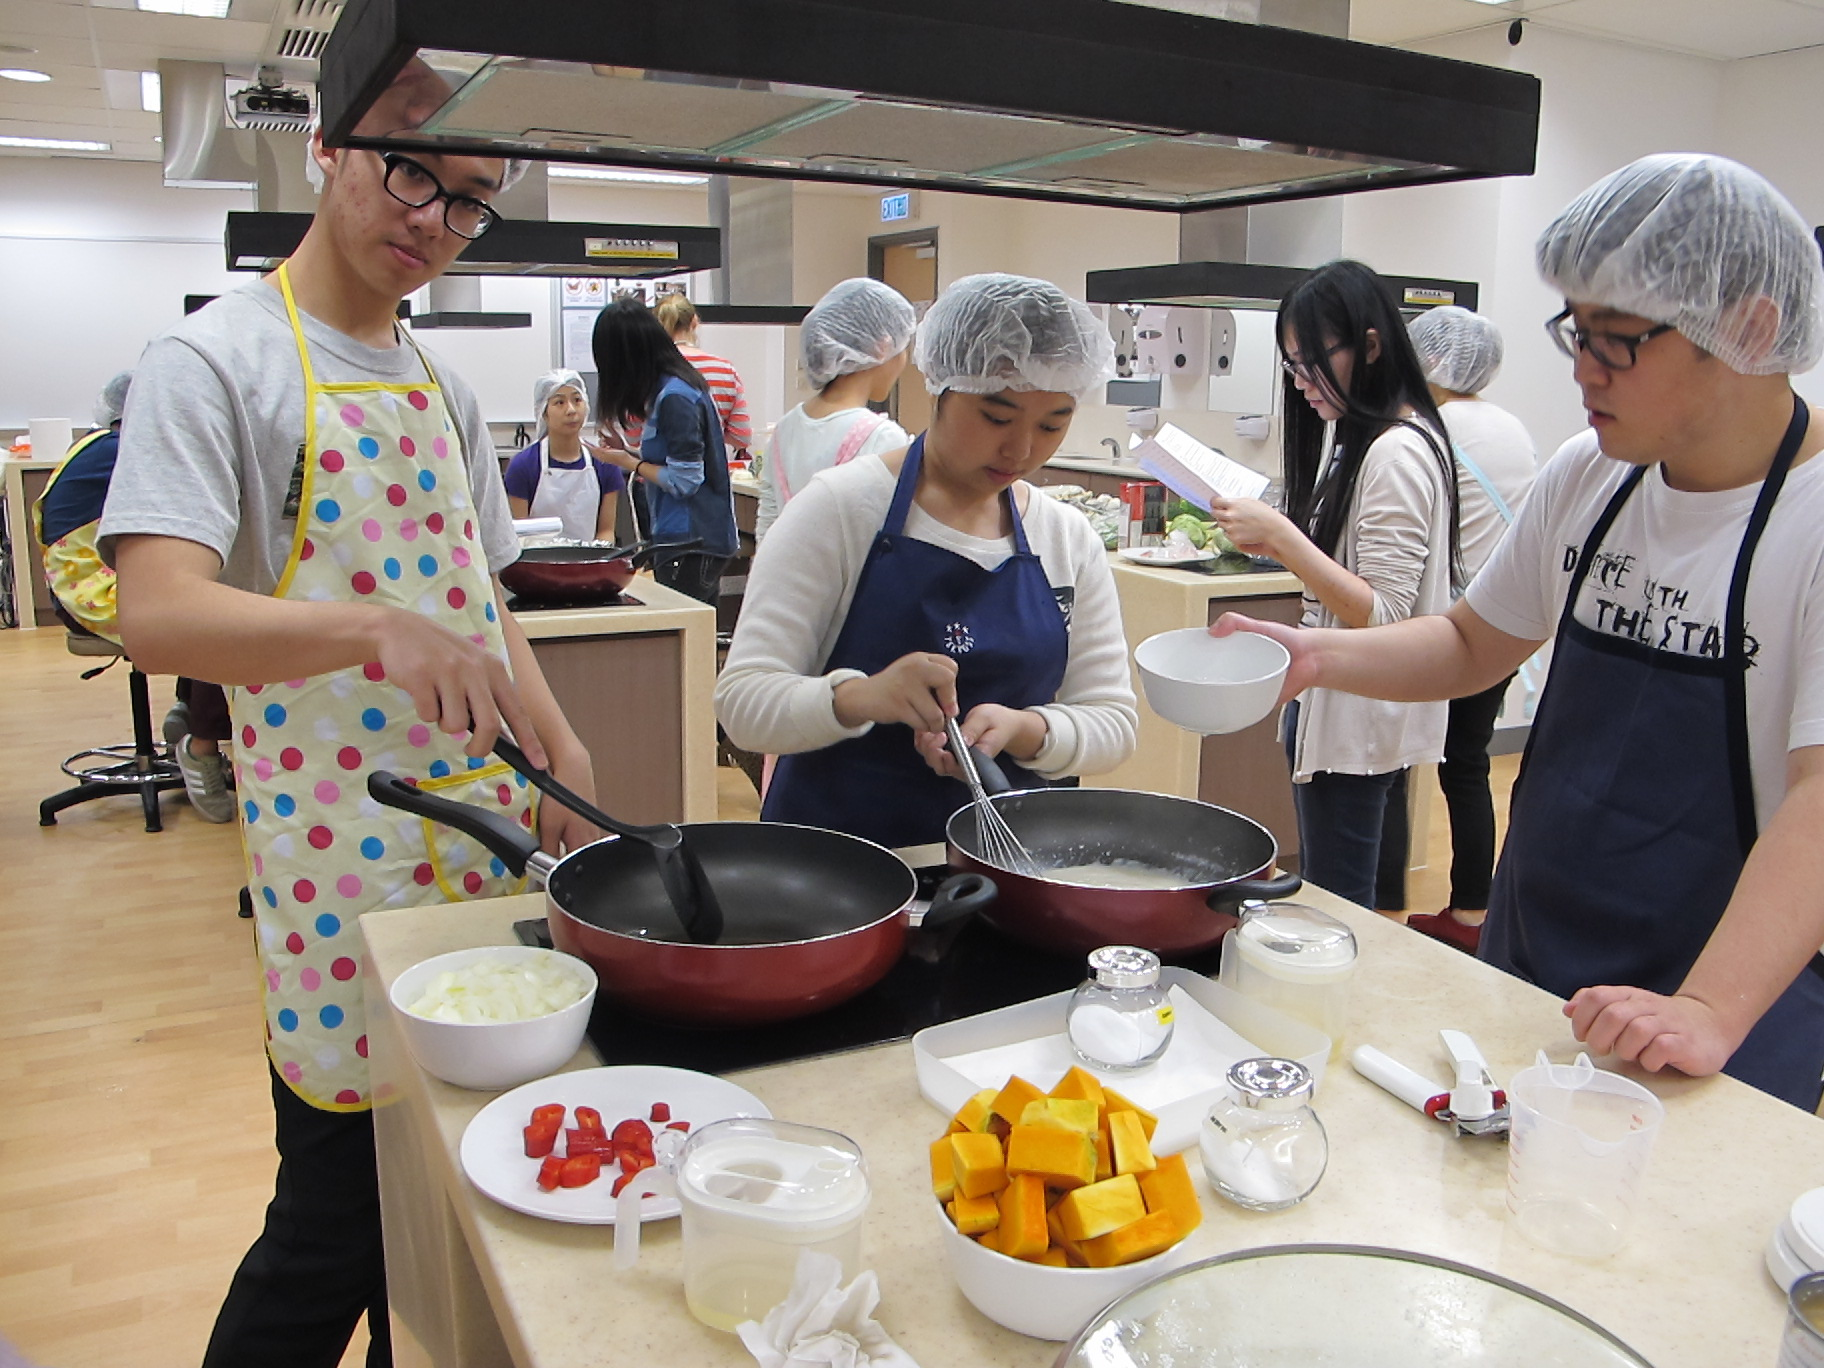 Feeding Hong Kong – Prepare nutritious, simple and low budget cookbook for the needy - Photo - 23